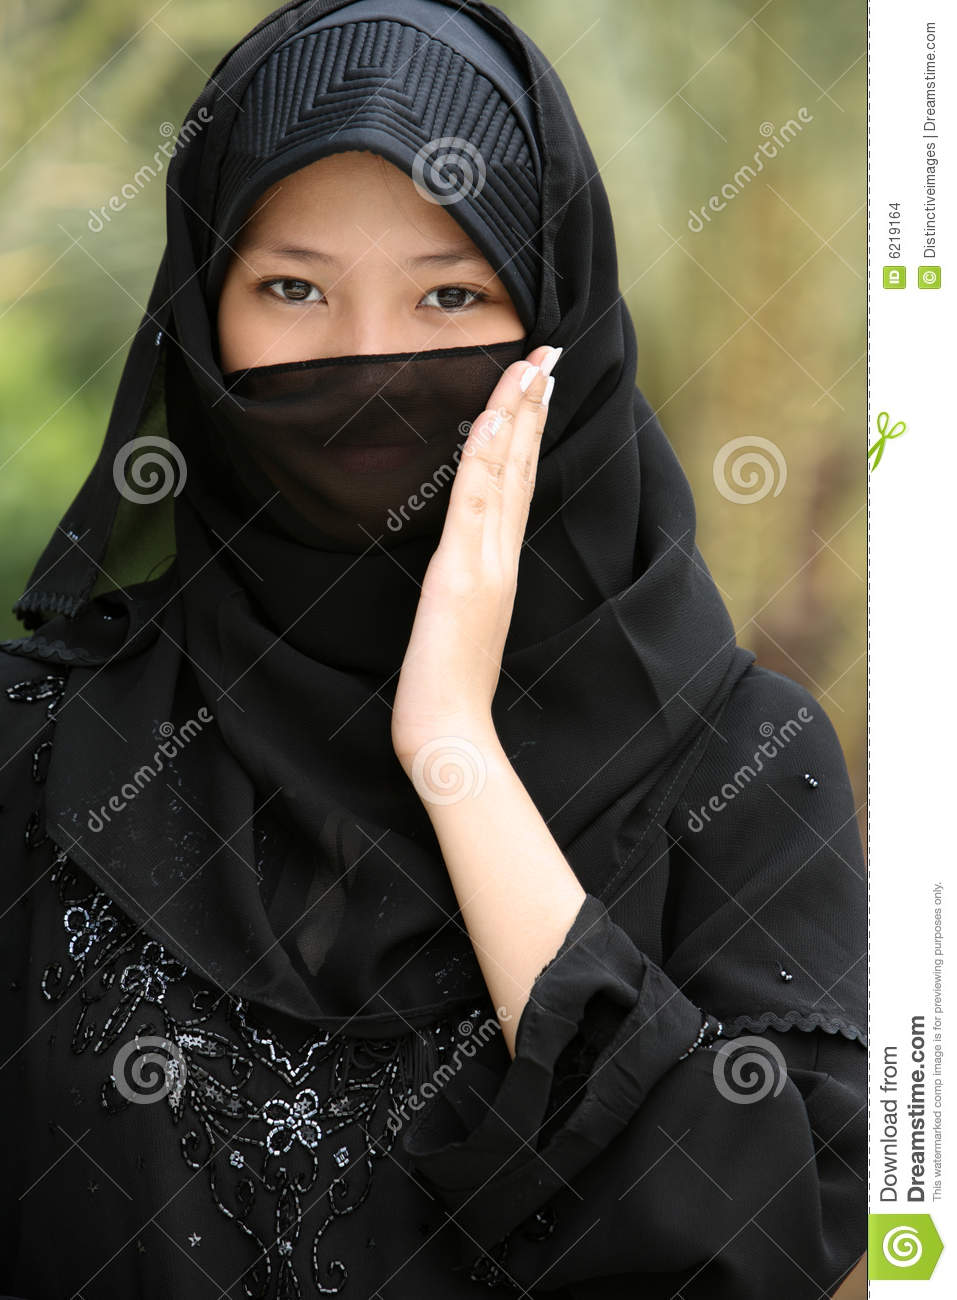 american muslim online dating {show}there are restrictions dating a muslim american man whom a accompanying man can why which are further made below personal to qur'an 5: and .